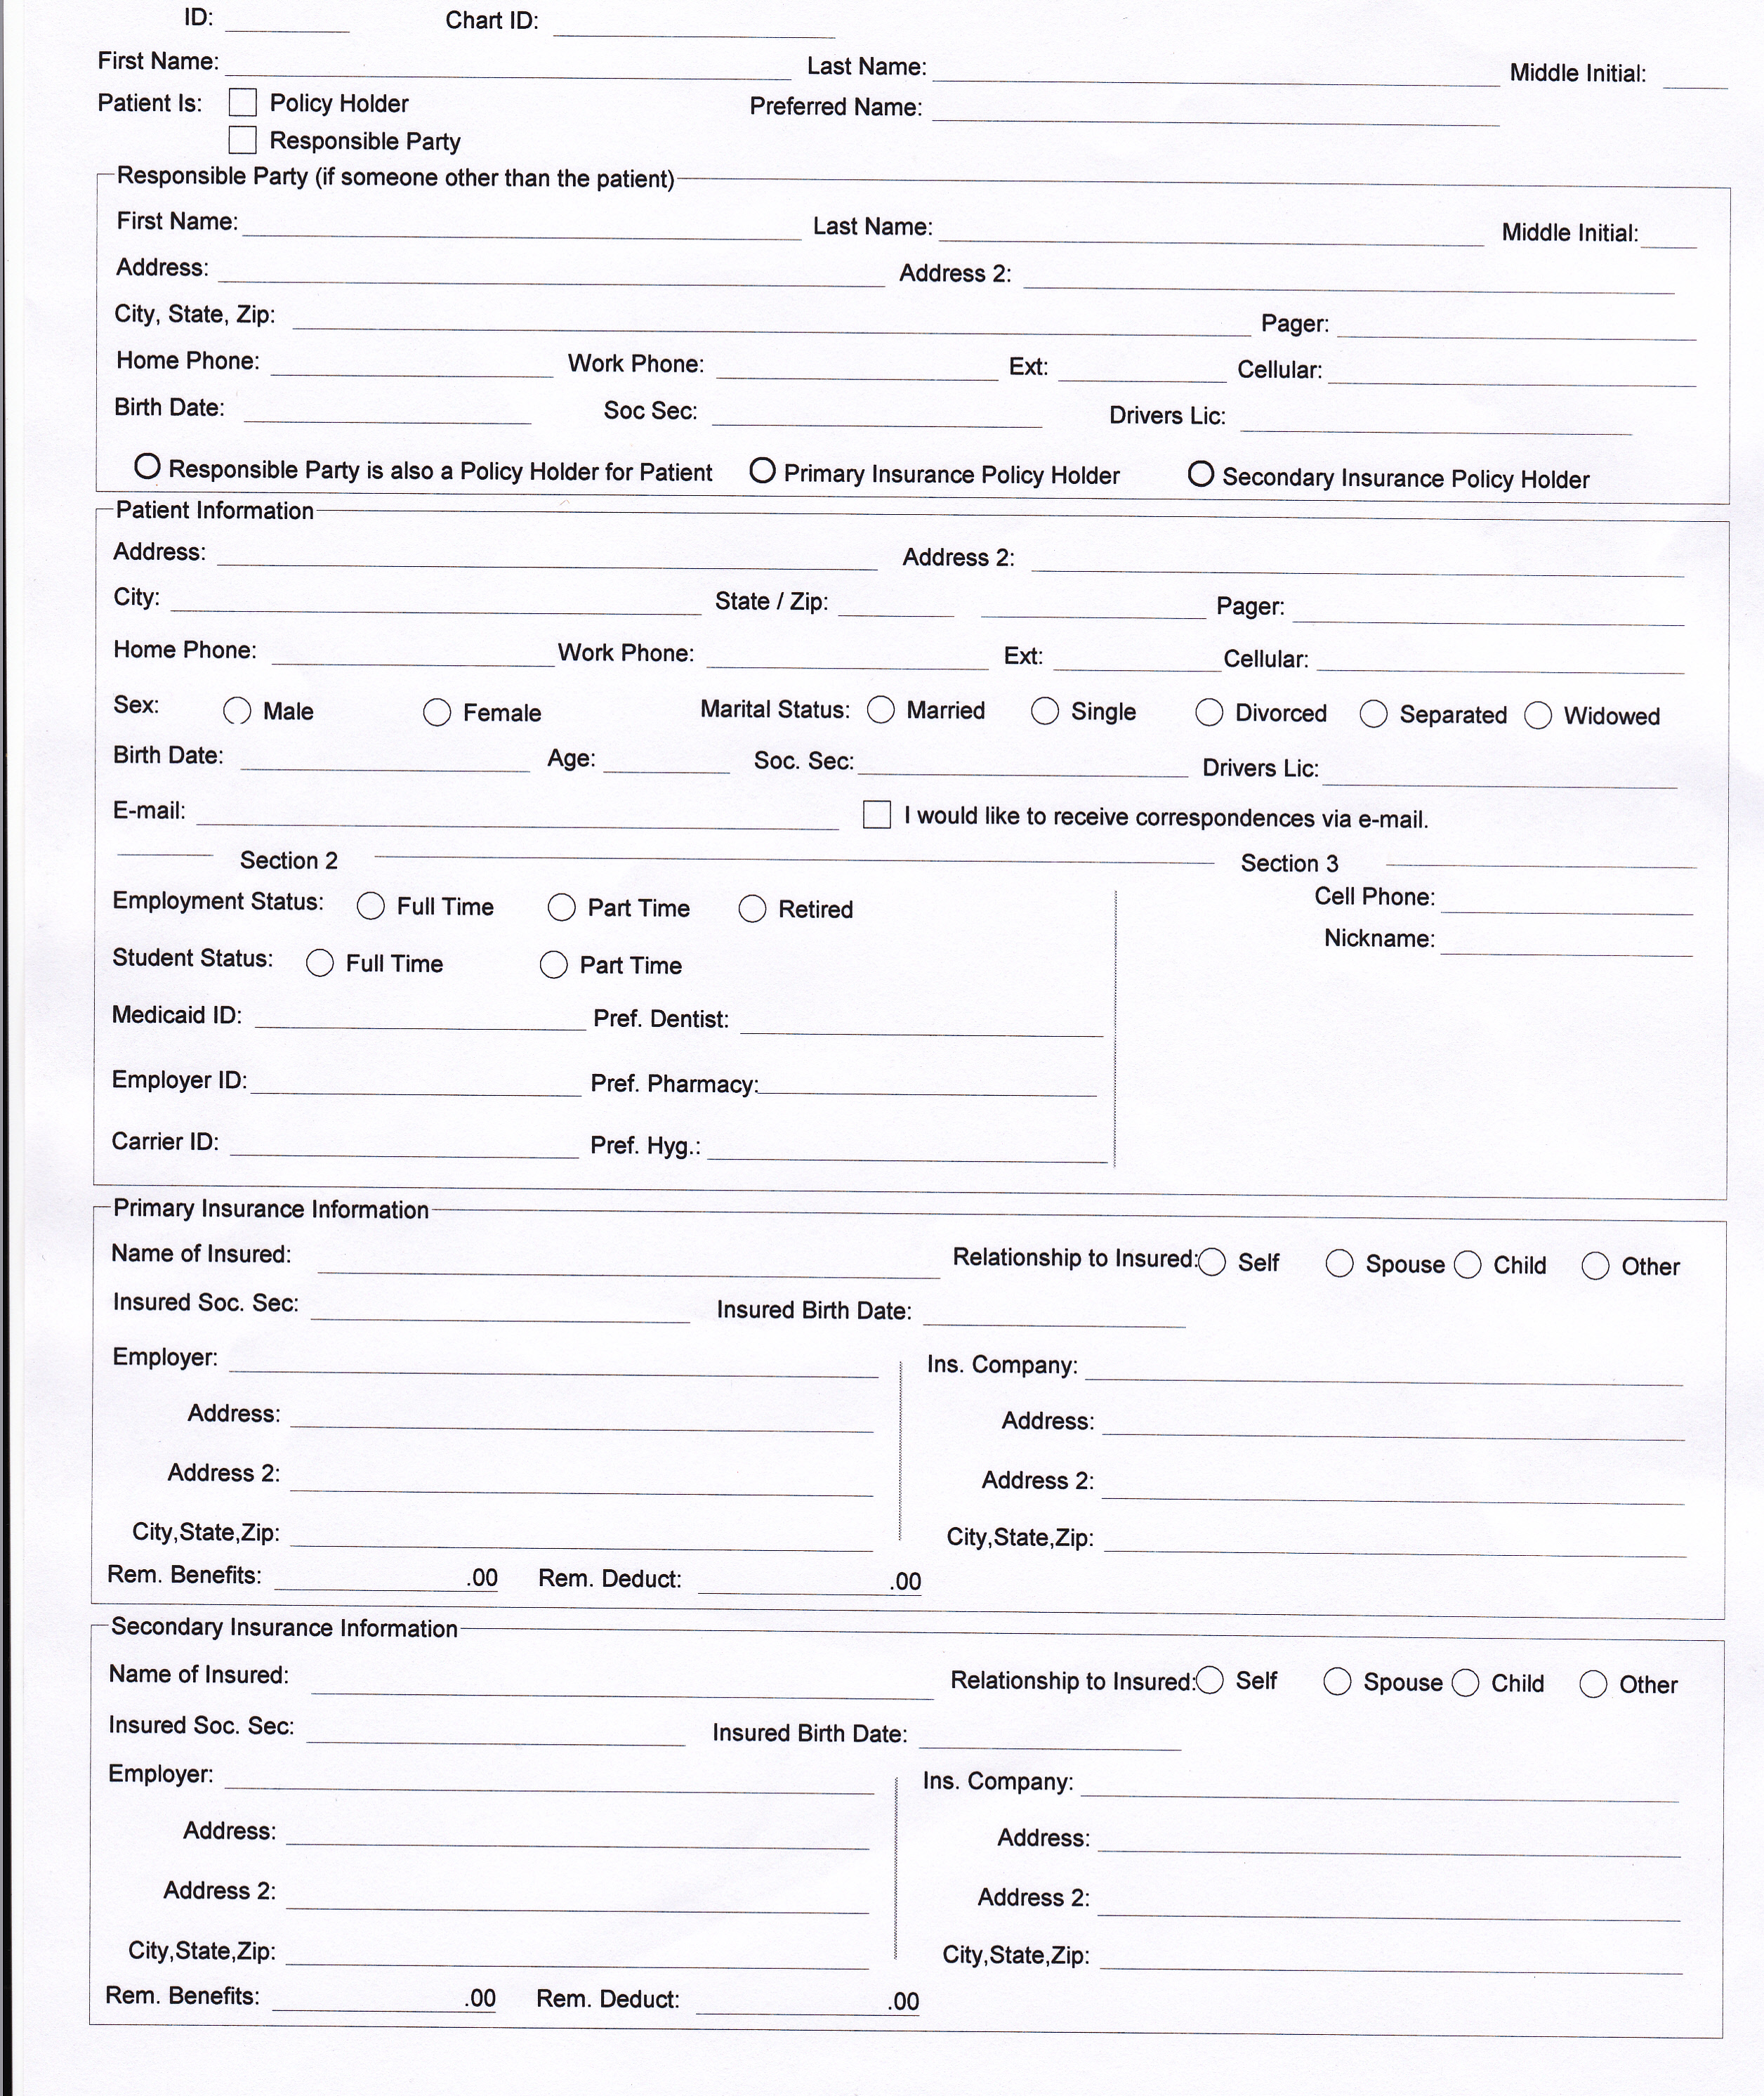 Another dental patient form.